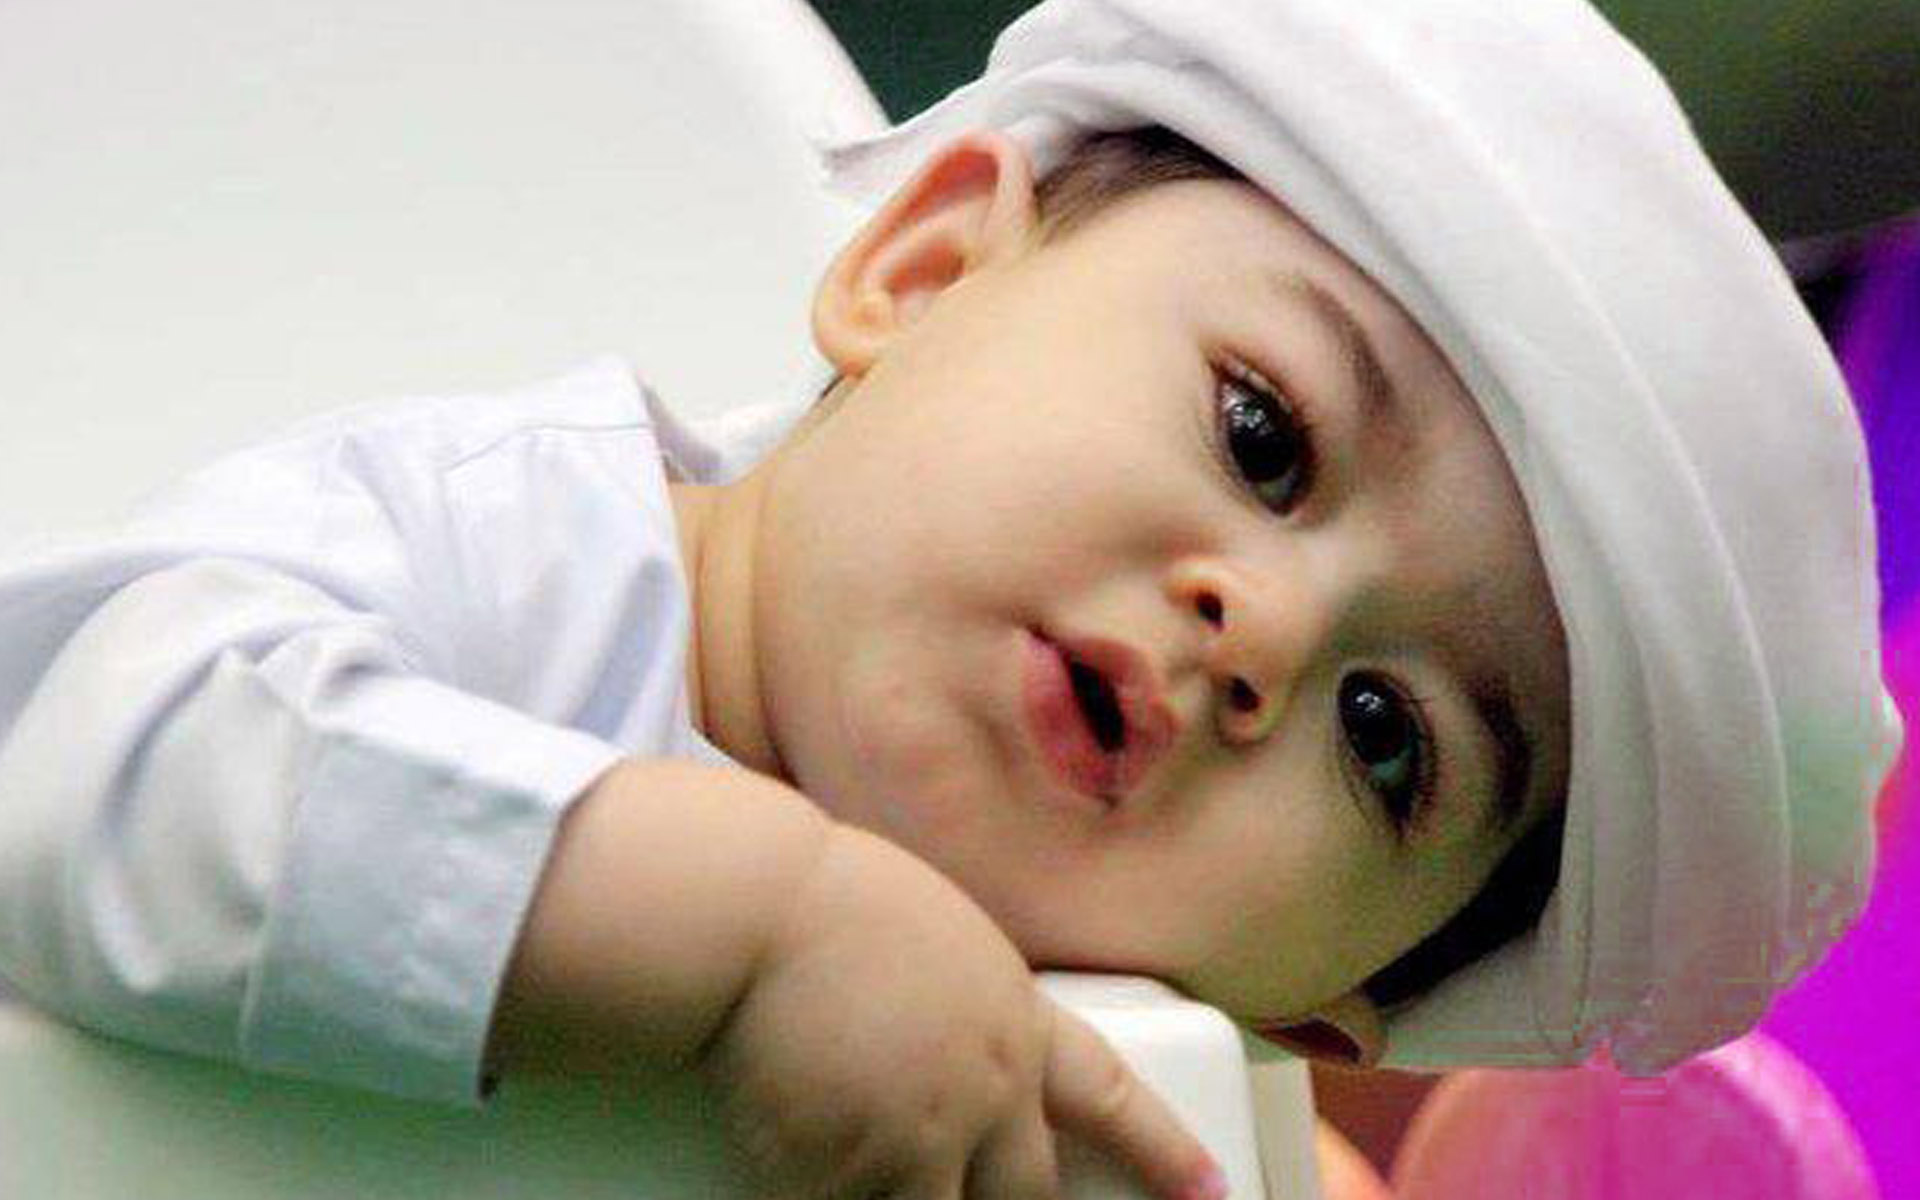 Cute Baby Boy Pic: Cute Baby Wallpapers For Desktop